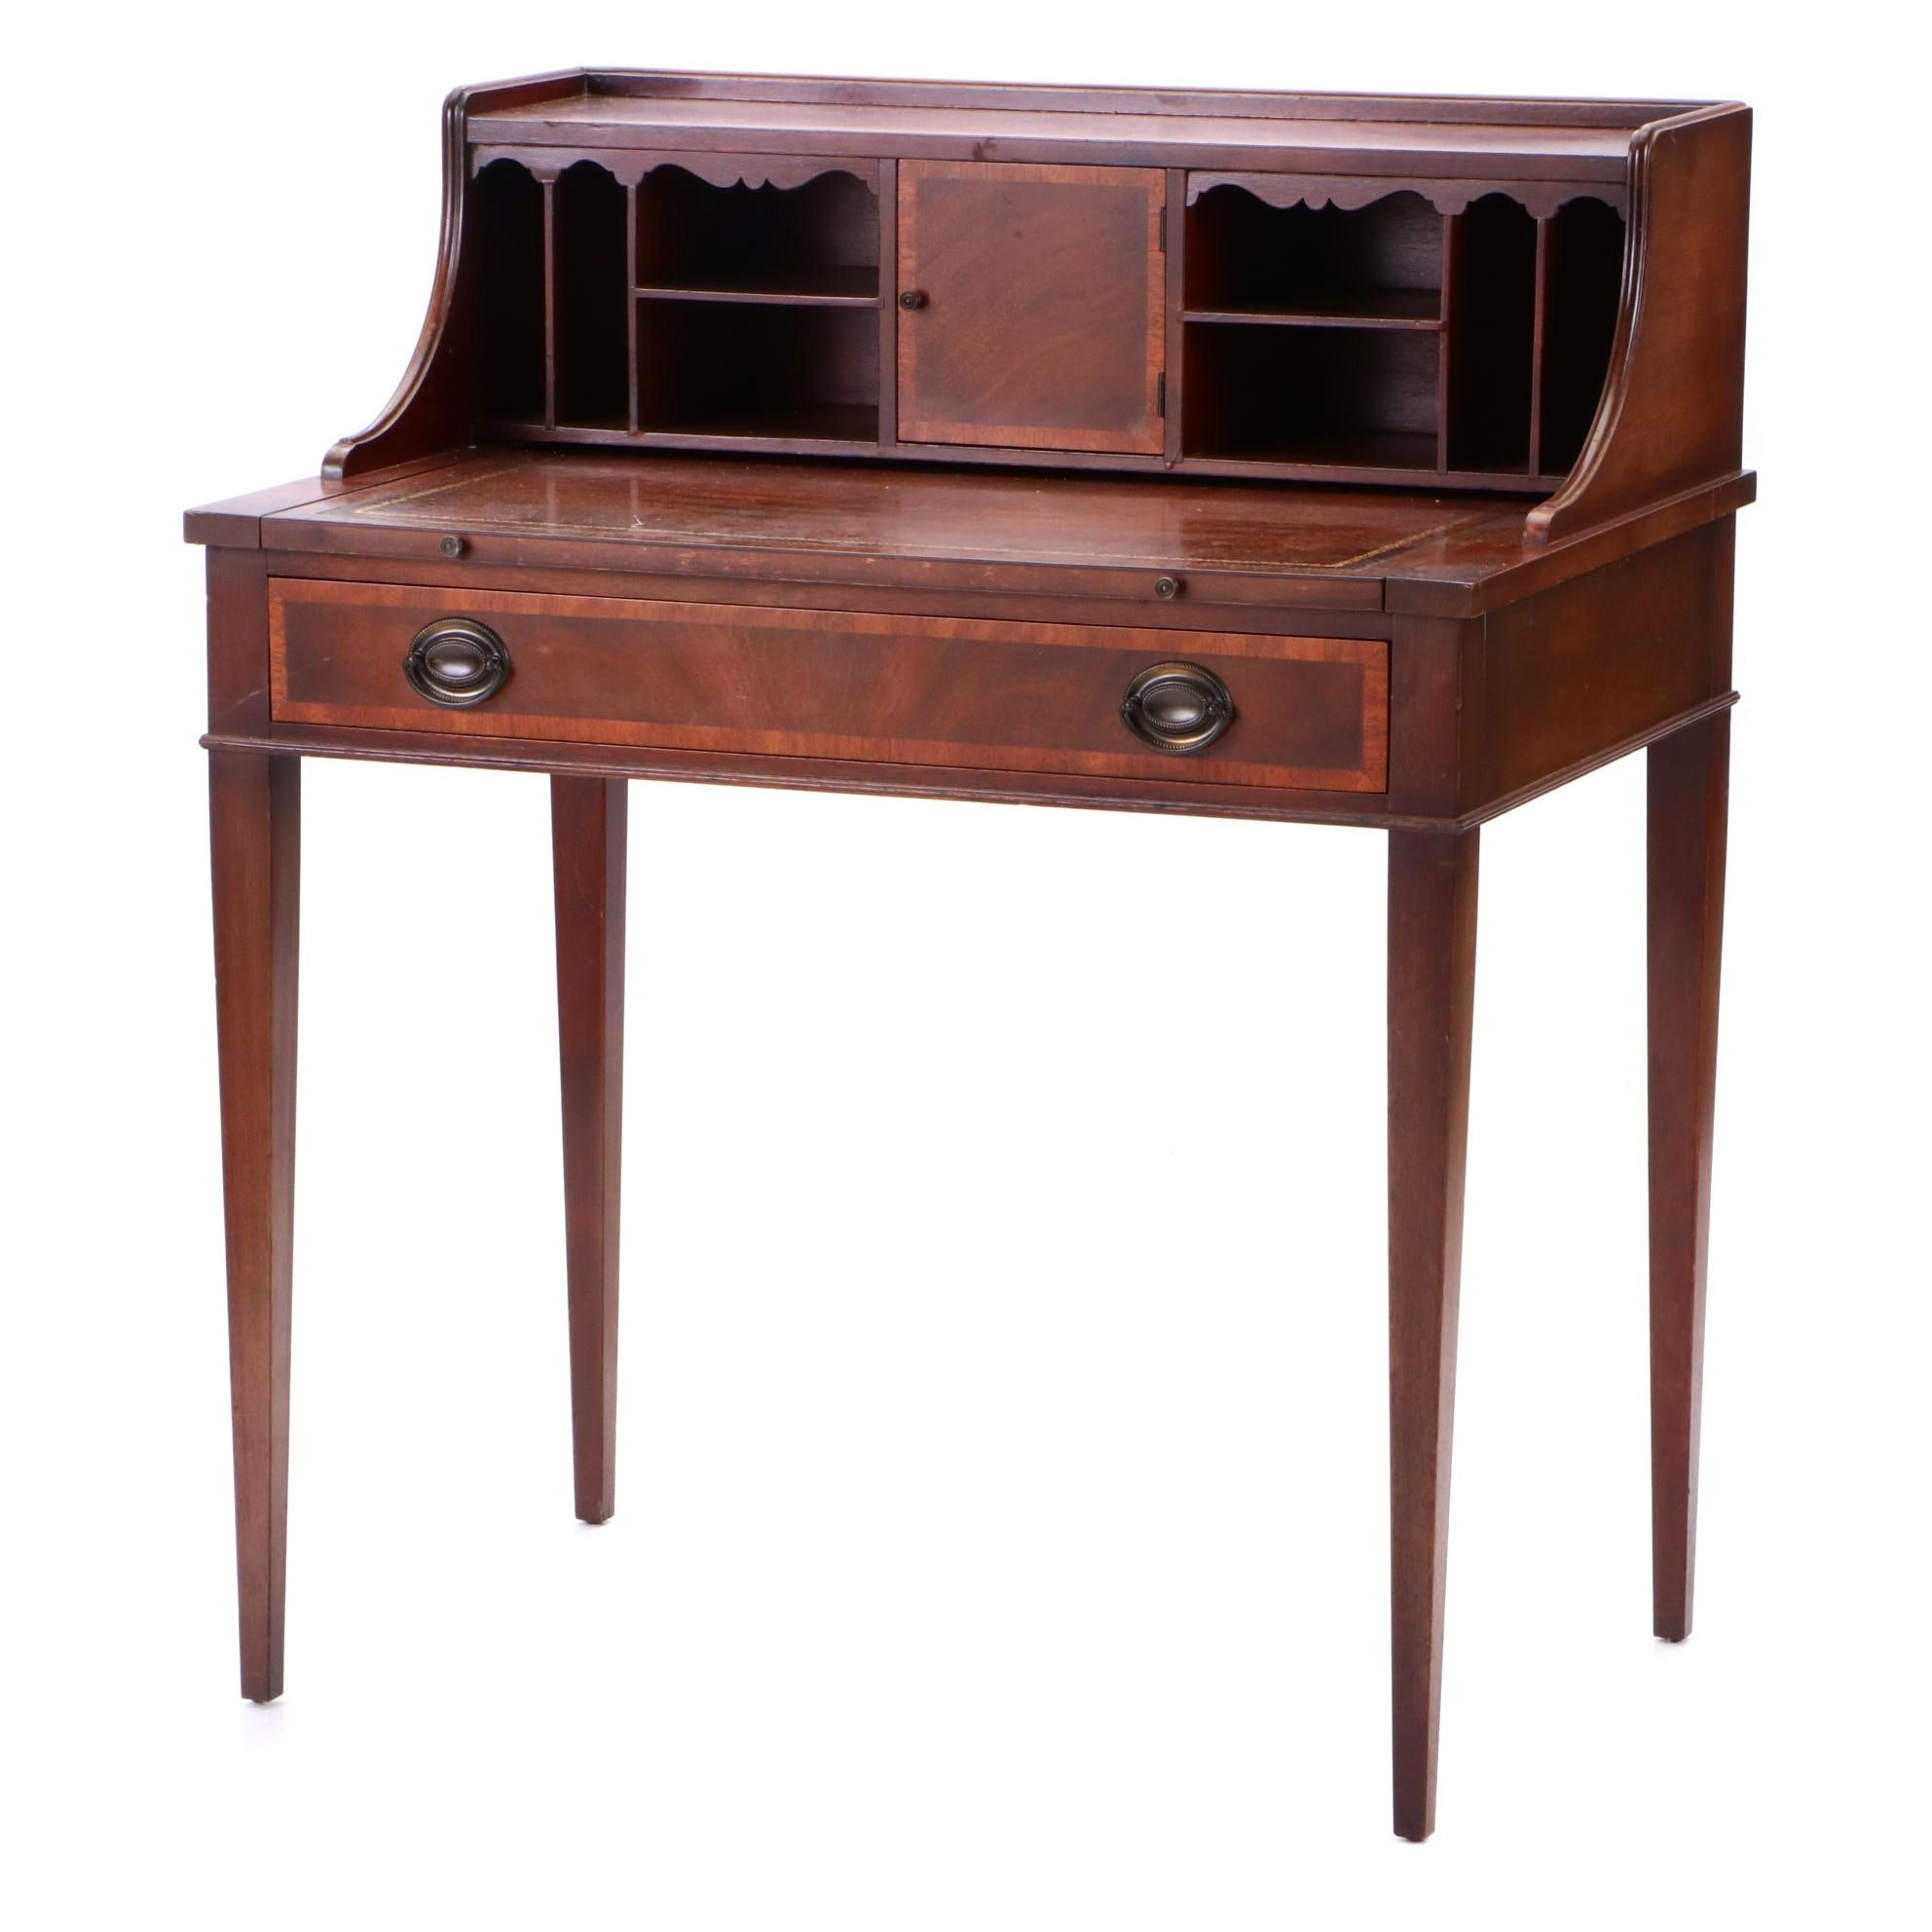 Vintage Sheraton Style Mahogany Finish Writing Desk